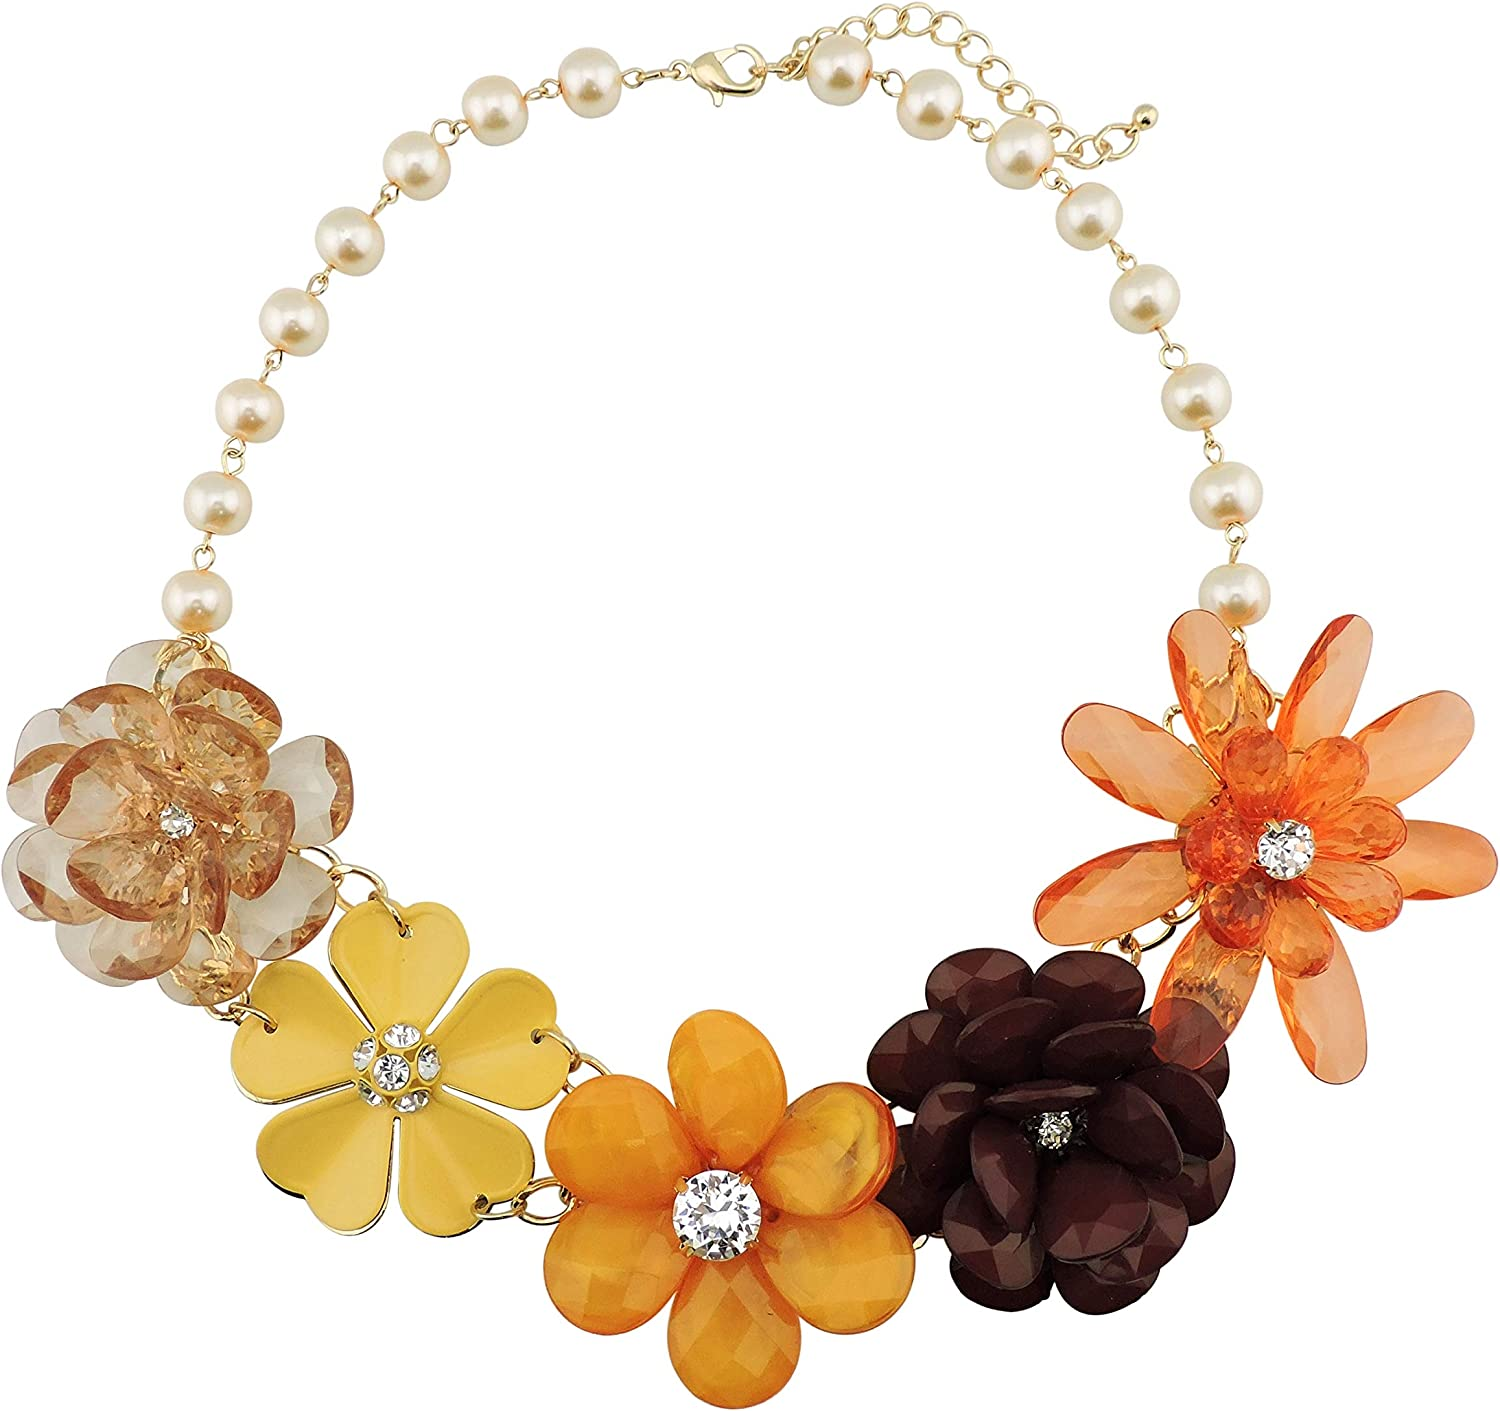 We Wholesale OFFer at cheap prices Bocar 5 Flower Braided Crystal Chunky Bib Statement Necklace Col